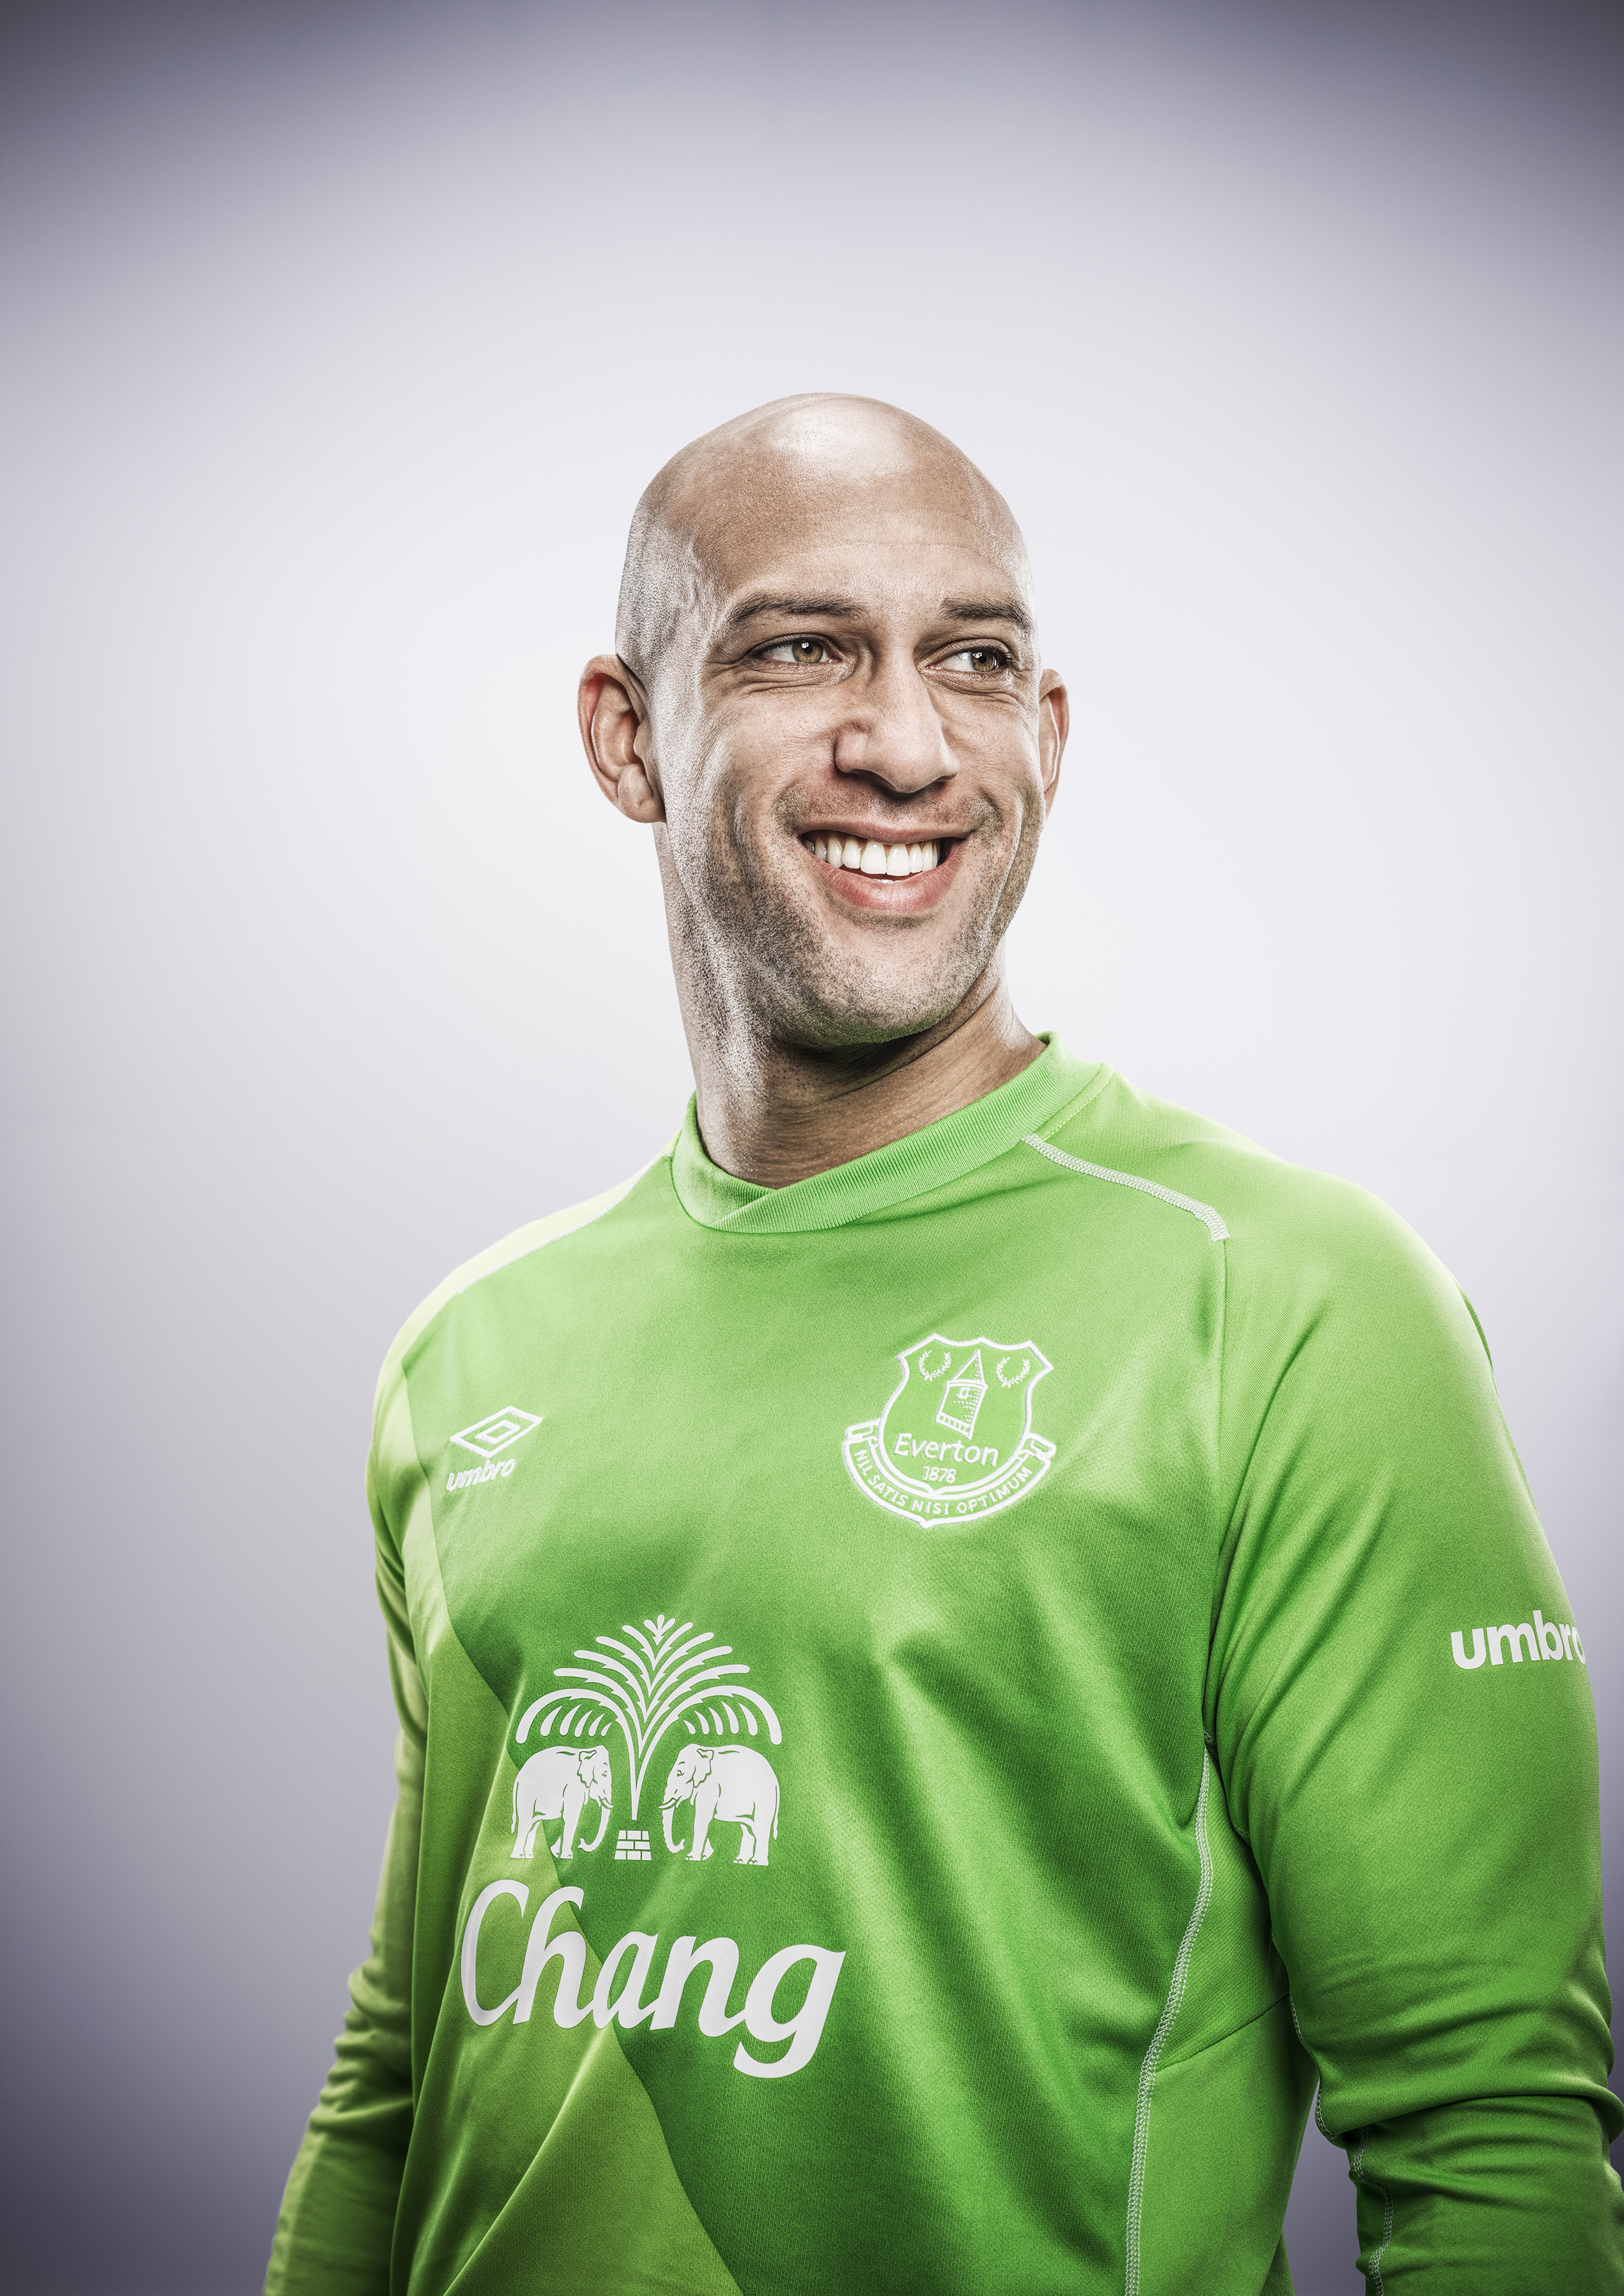 Everton-Third-2014-Howard-Portrait.jpg